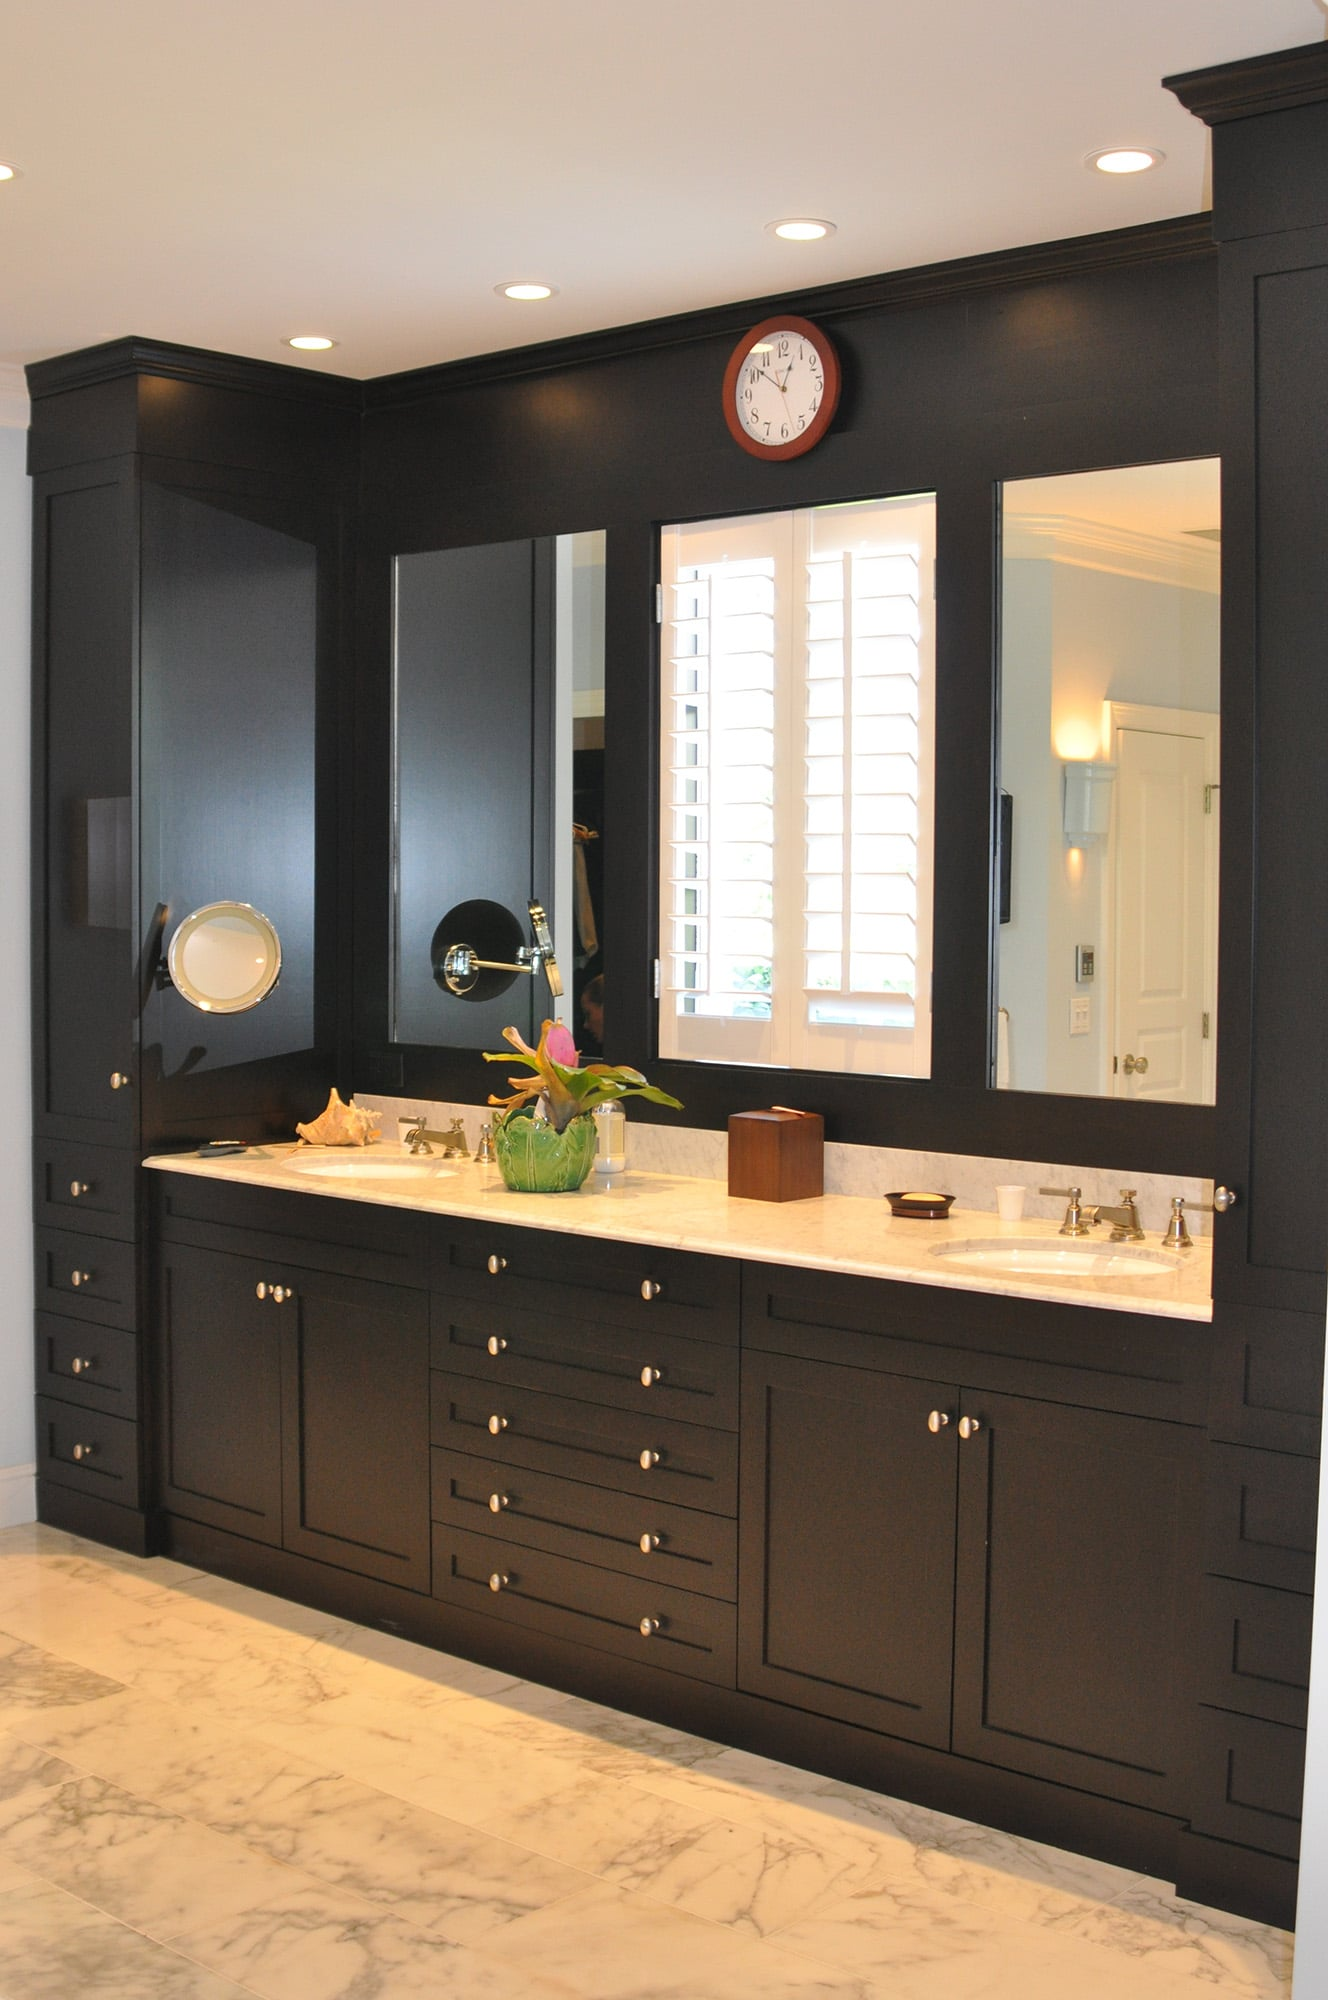 Custom bathroom cabinets by Dunlap Construction